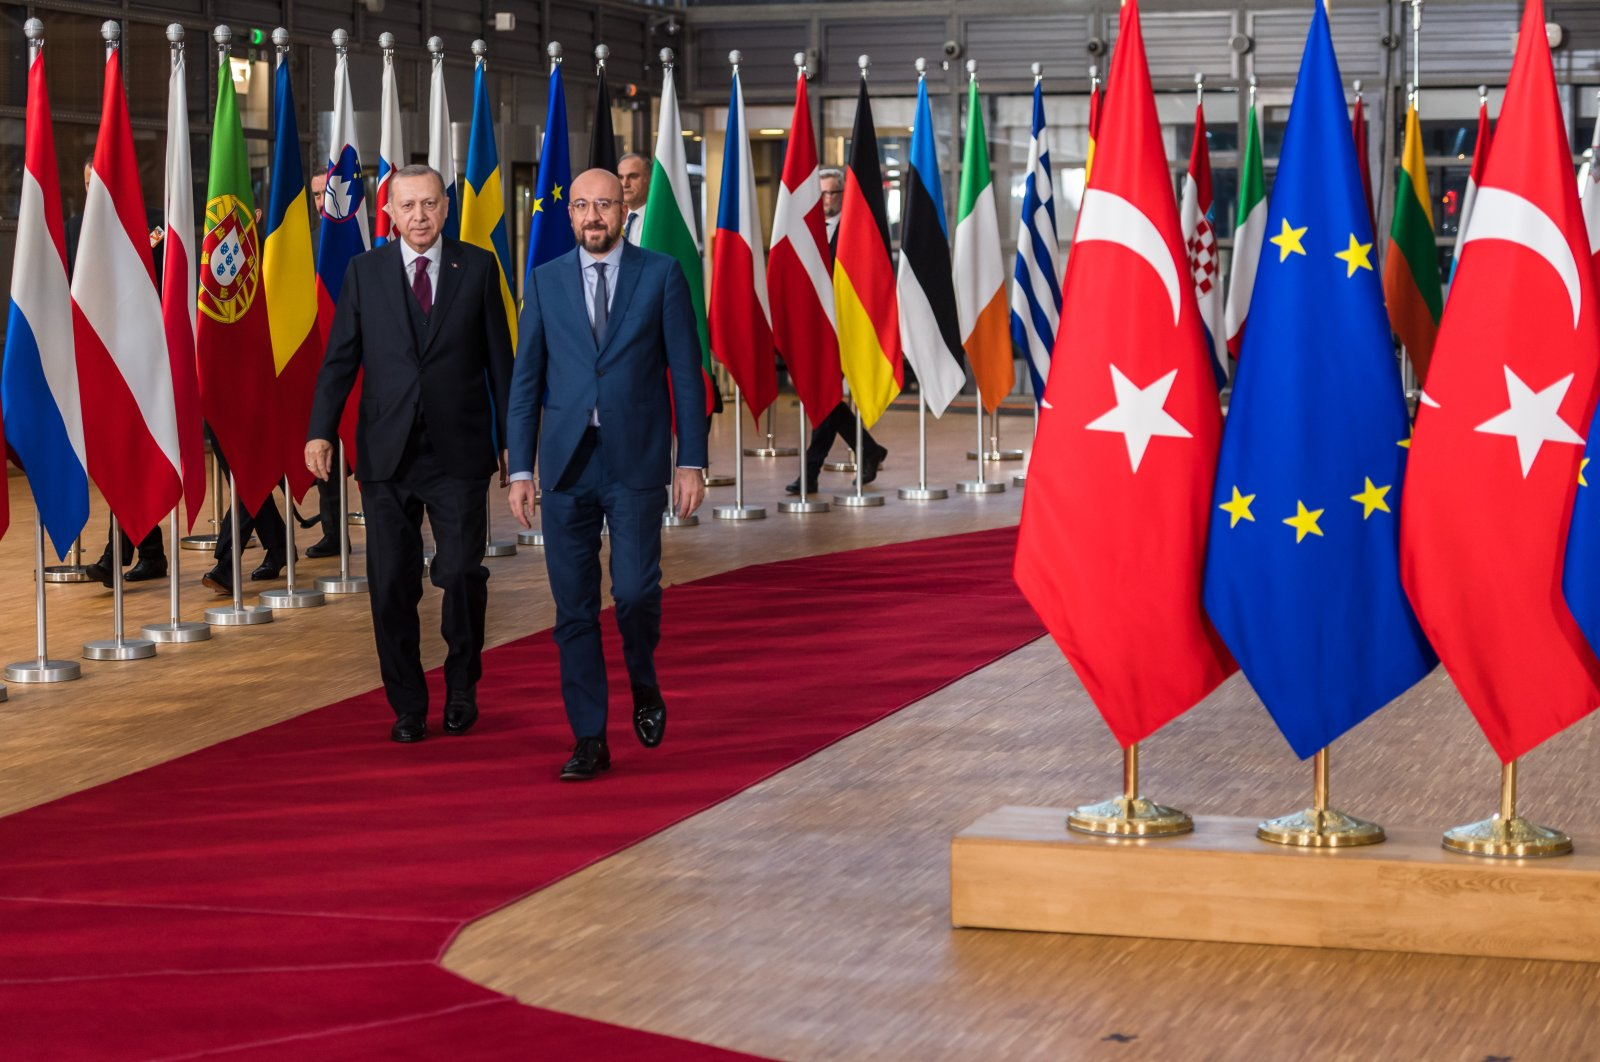 President Recep Tayyip Erdoğan (L) and European Council President Charles Michel arrive ahead of talks in Brussels, Belgium, March 9, 2020. (Photo by Getty Images)